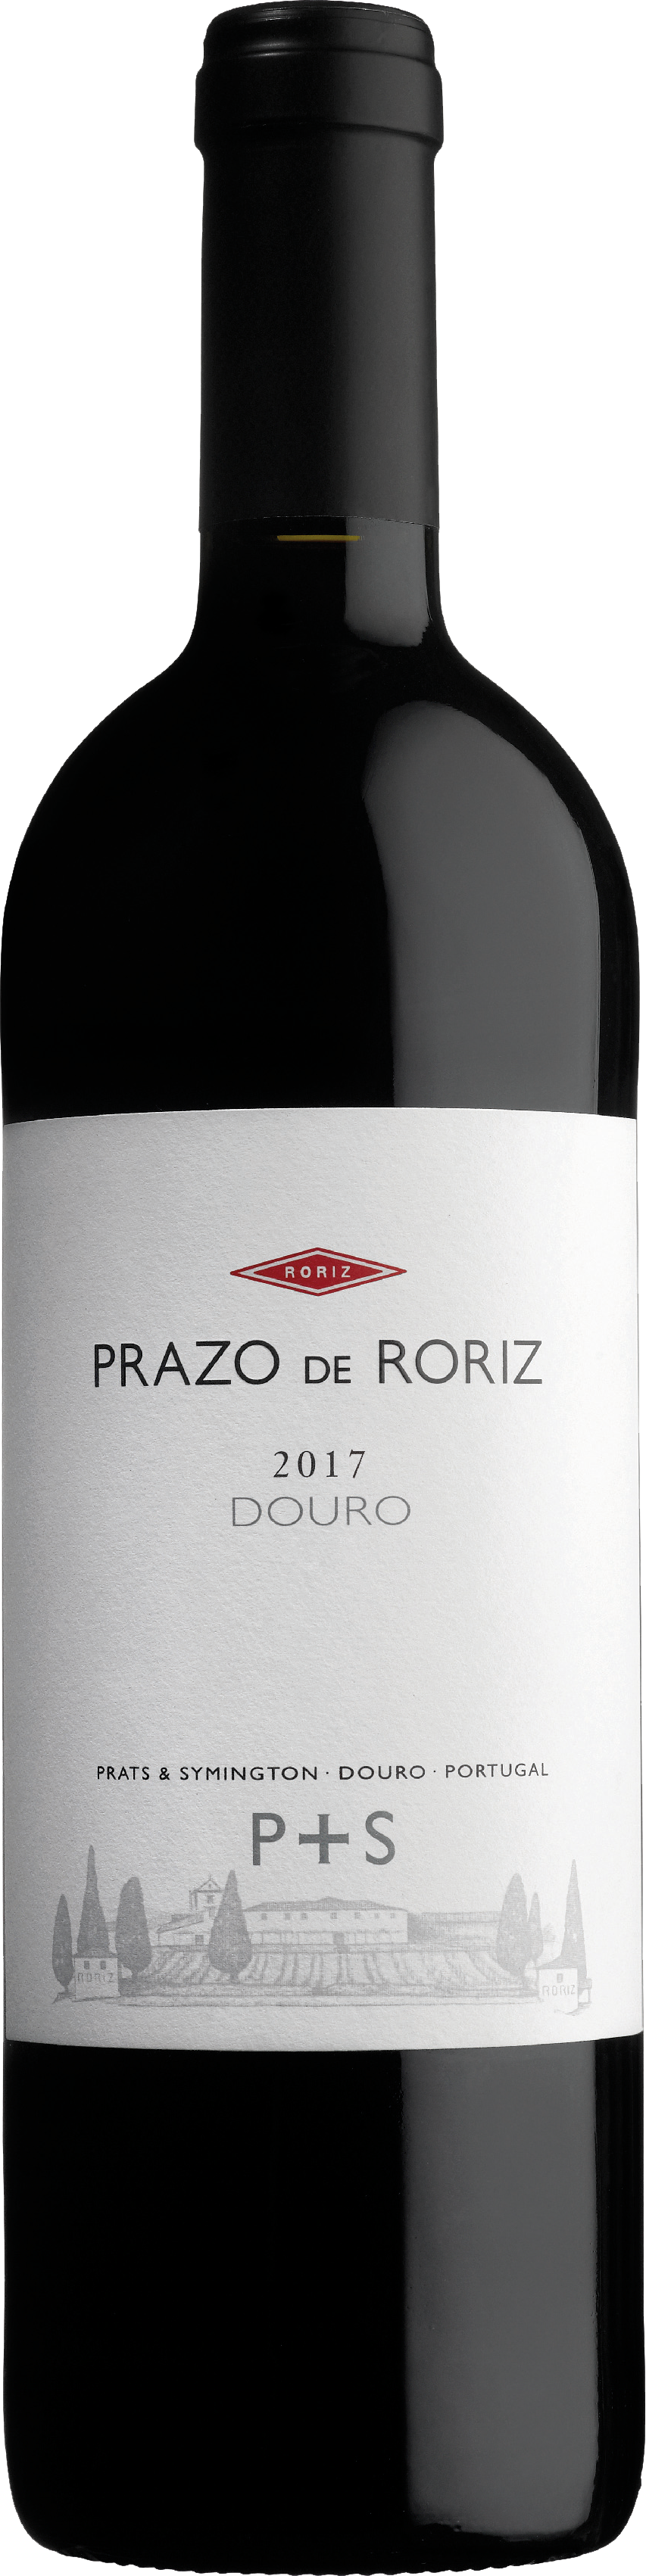 Product Image for P&S PRAZO DE RORIZ DOURO RED 2017